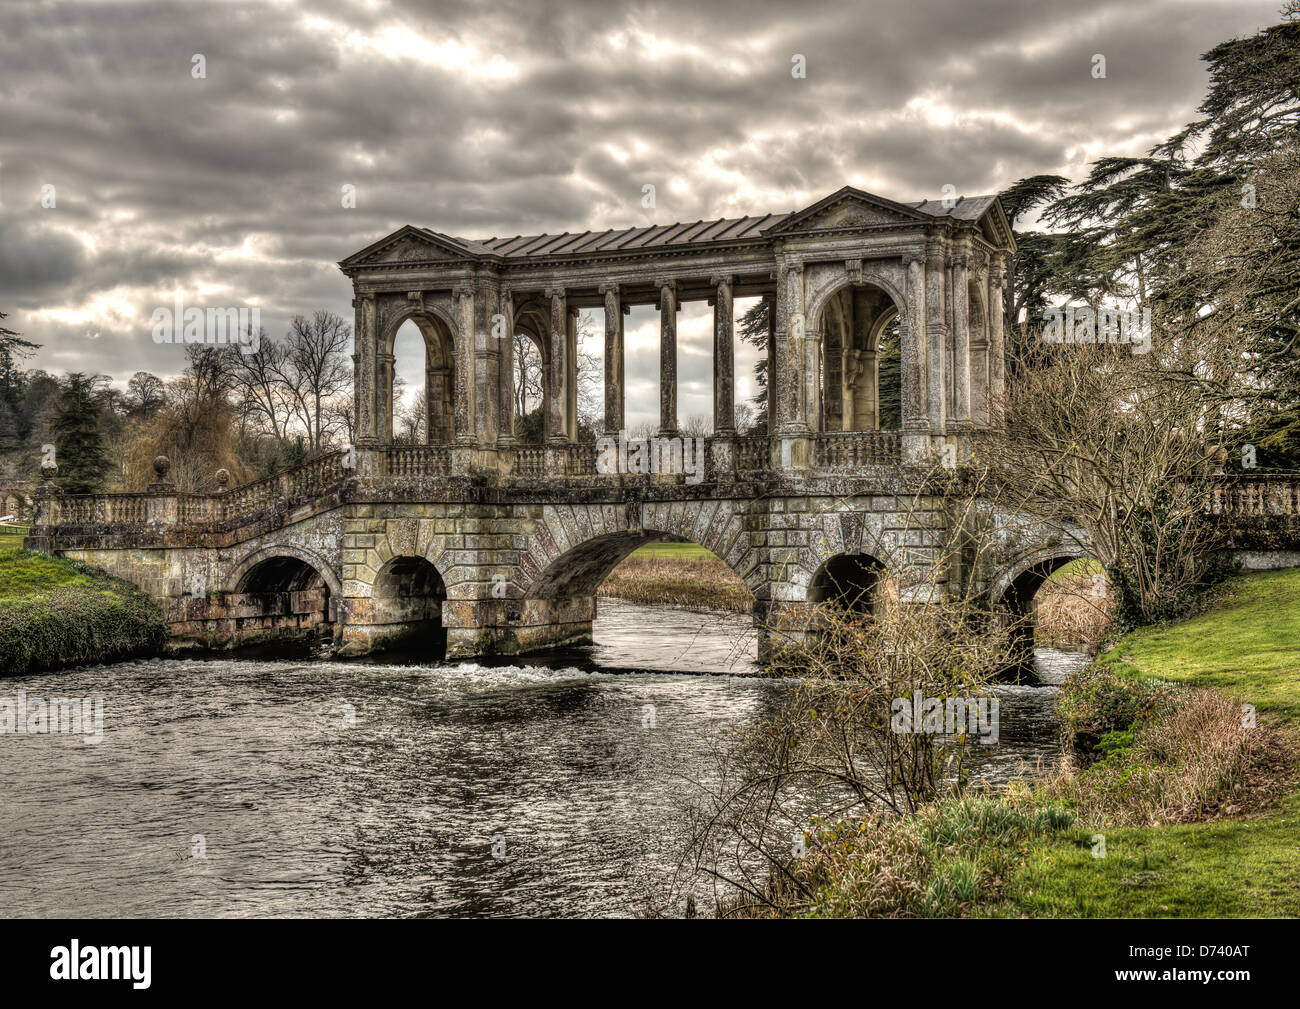 Stock Photo   Wilton House Palladian Bridge Is The Home Of The Earl Of  Pembrook And With The Stormy Sunlit Clouds Gives A Classic Look To It